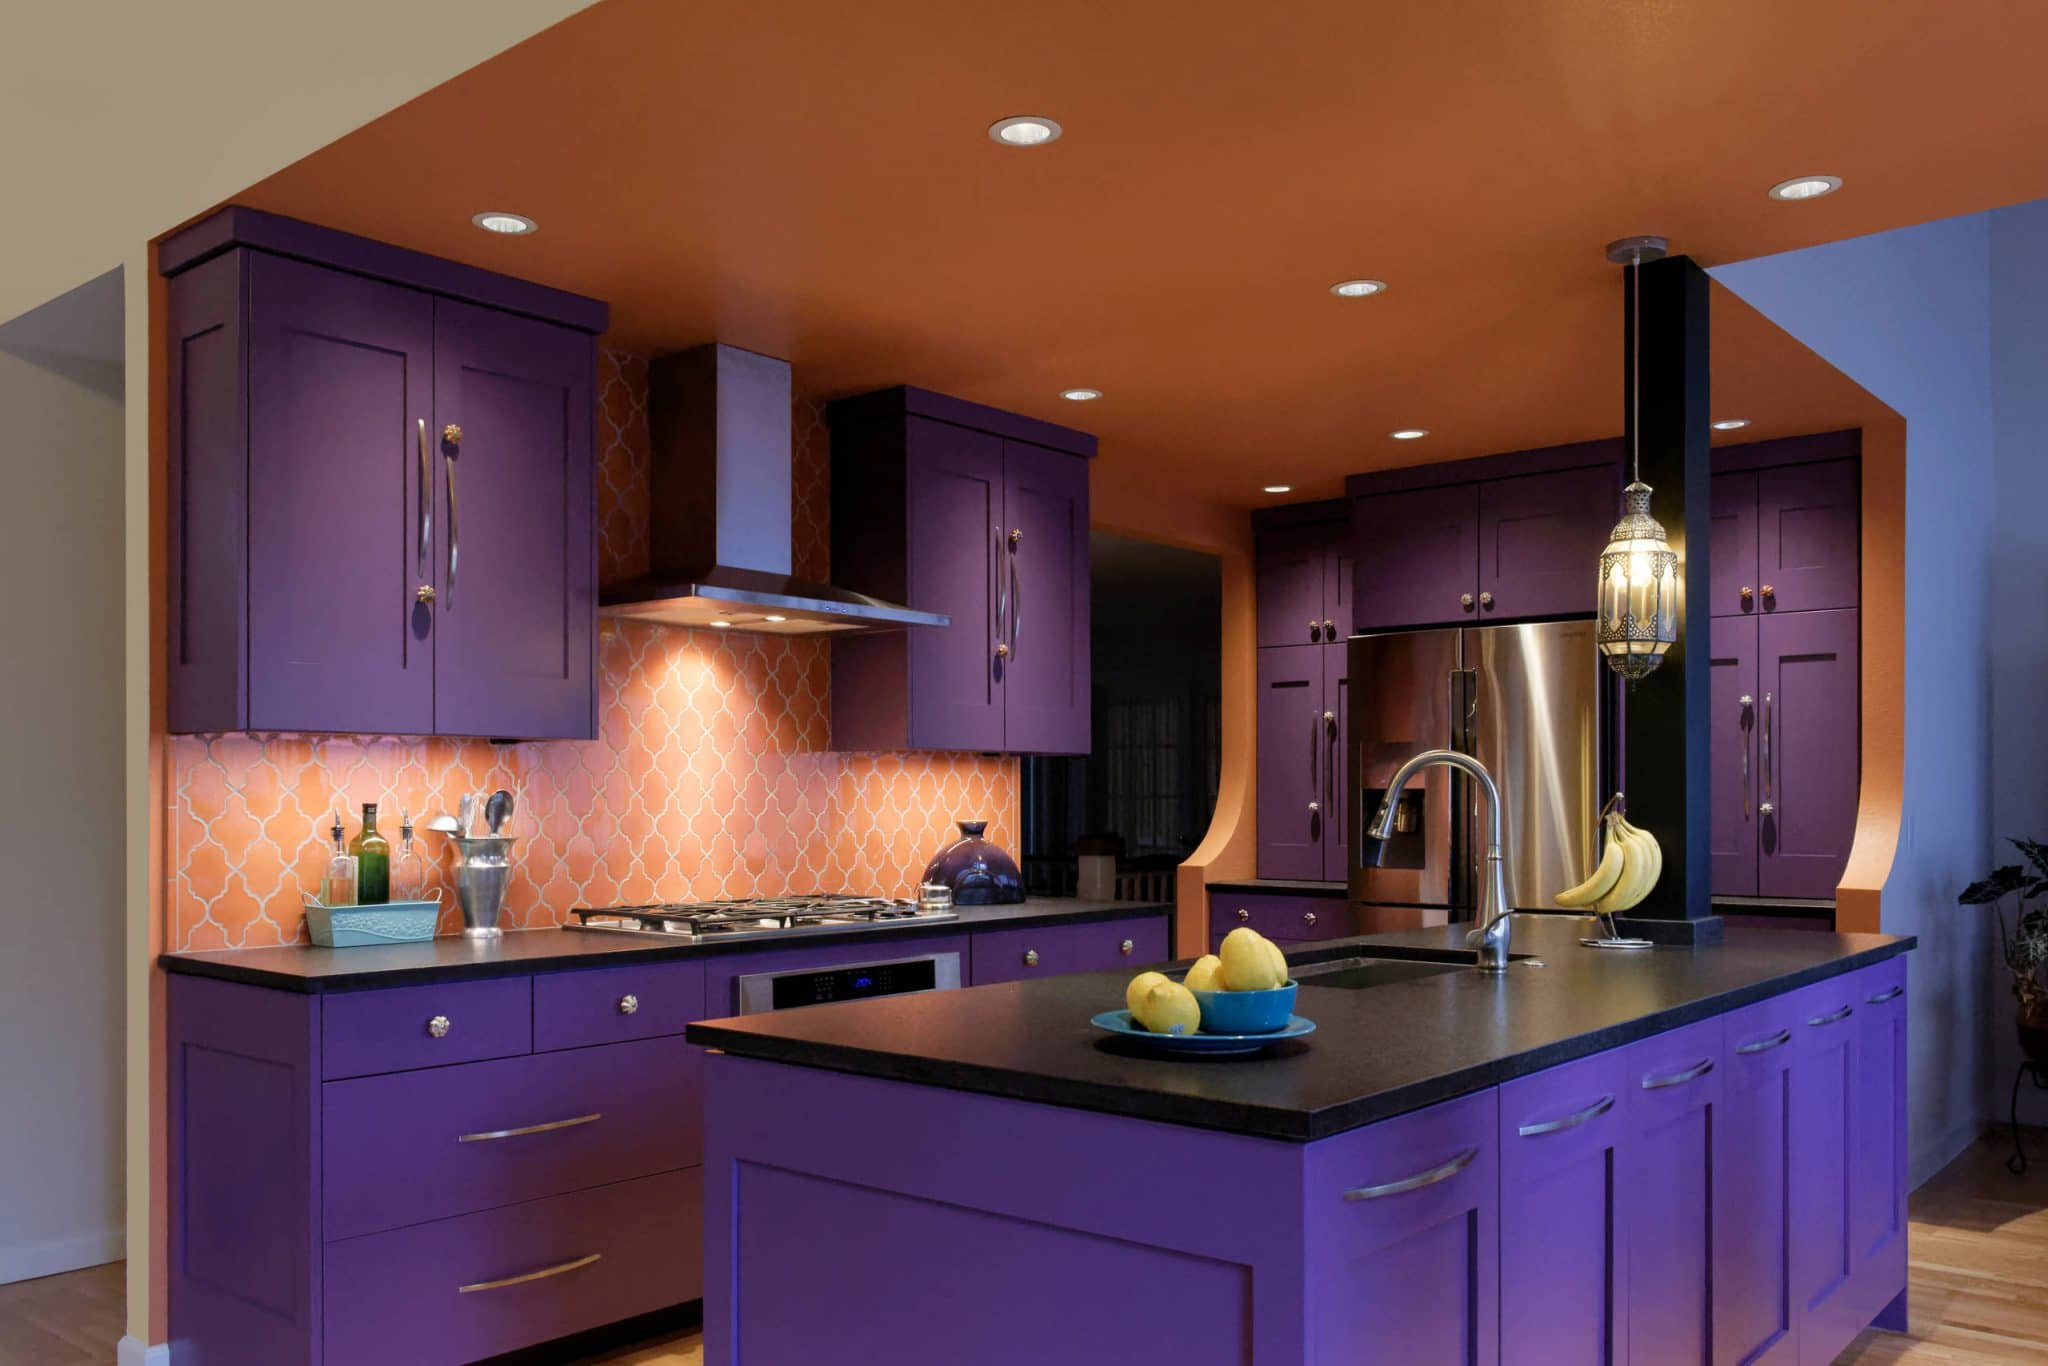 Bright Kitchen Cabinets Best Colors To Use For Kitchen Cabinets Best Online Cabinets